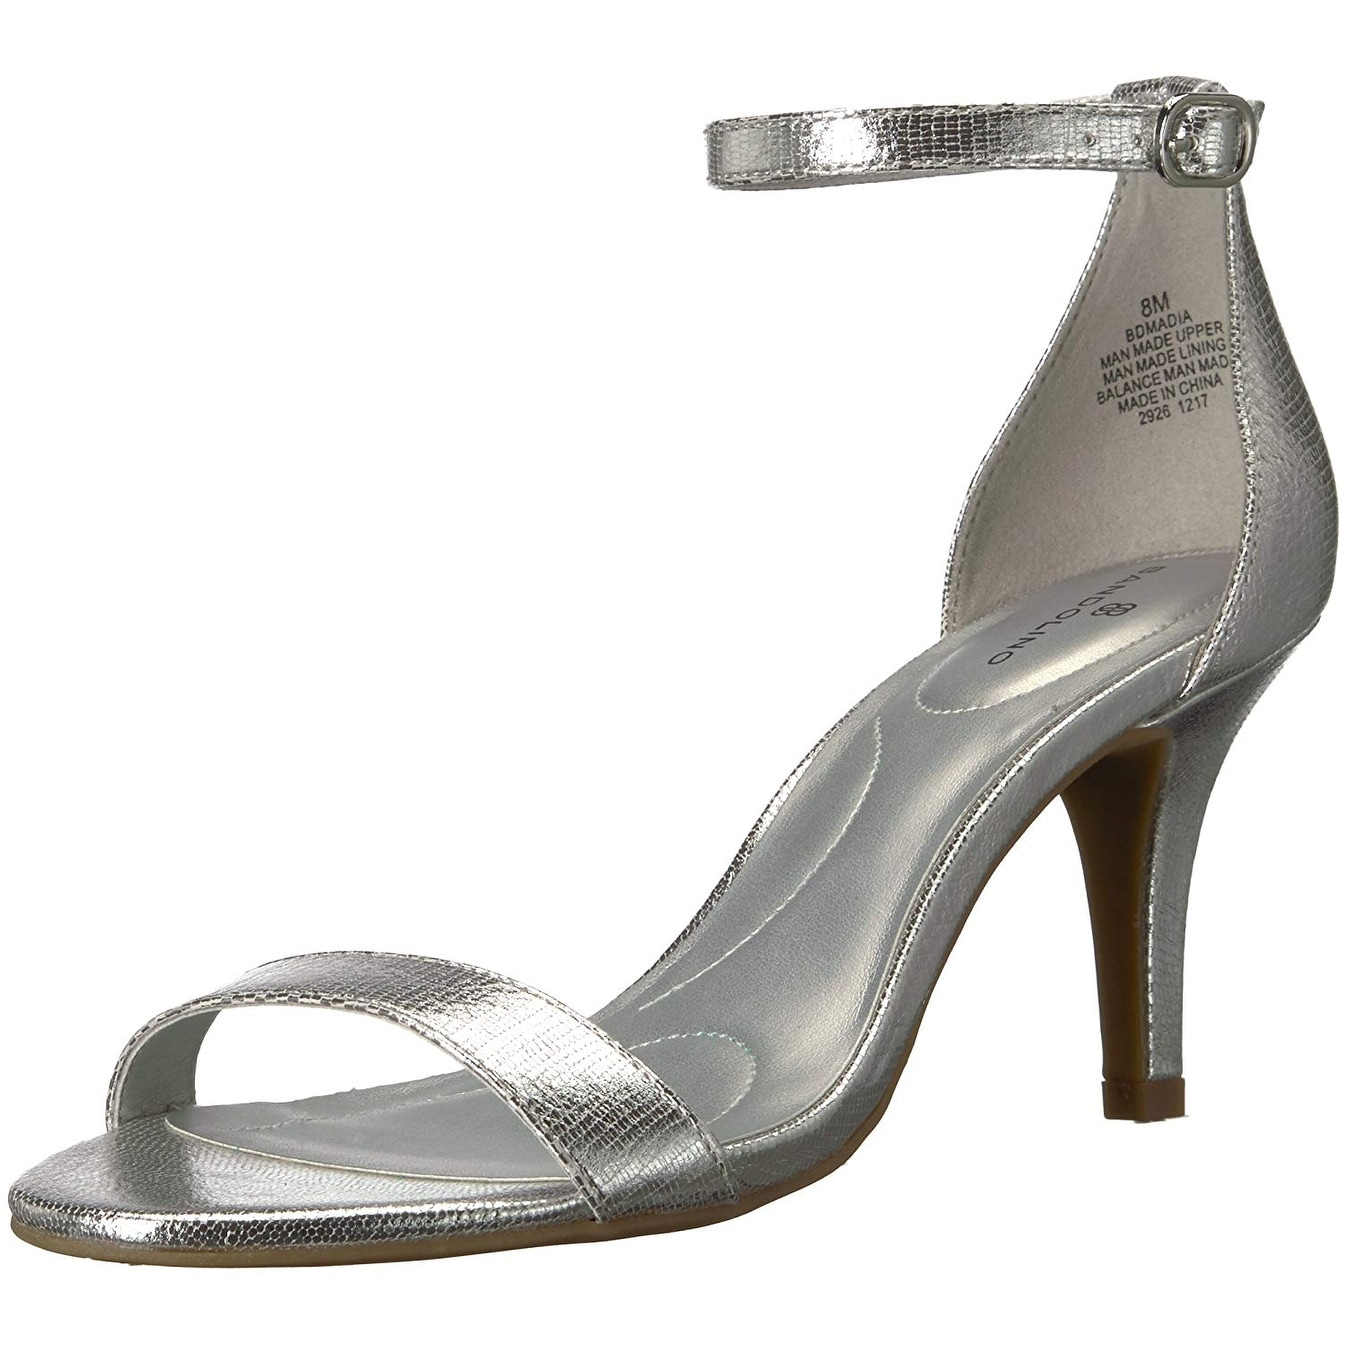 4adc28dc5b0a19 Shop Bandolino Womens madia Open Toe Casual Ankle Strap Sandals - On Sale -  Free Shipping On Orders Over  45 - Overstock.com - 20372900